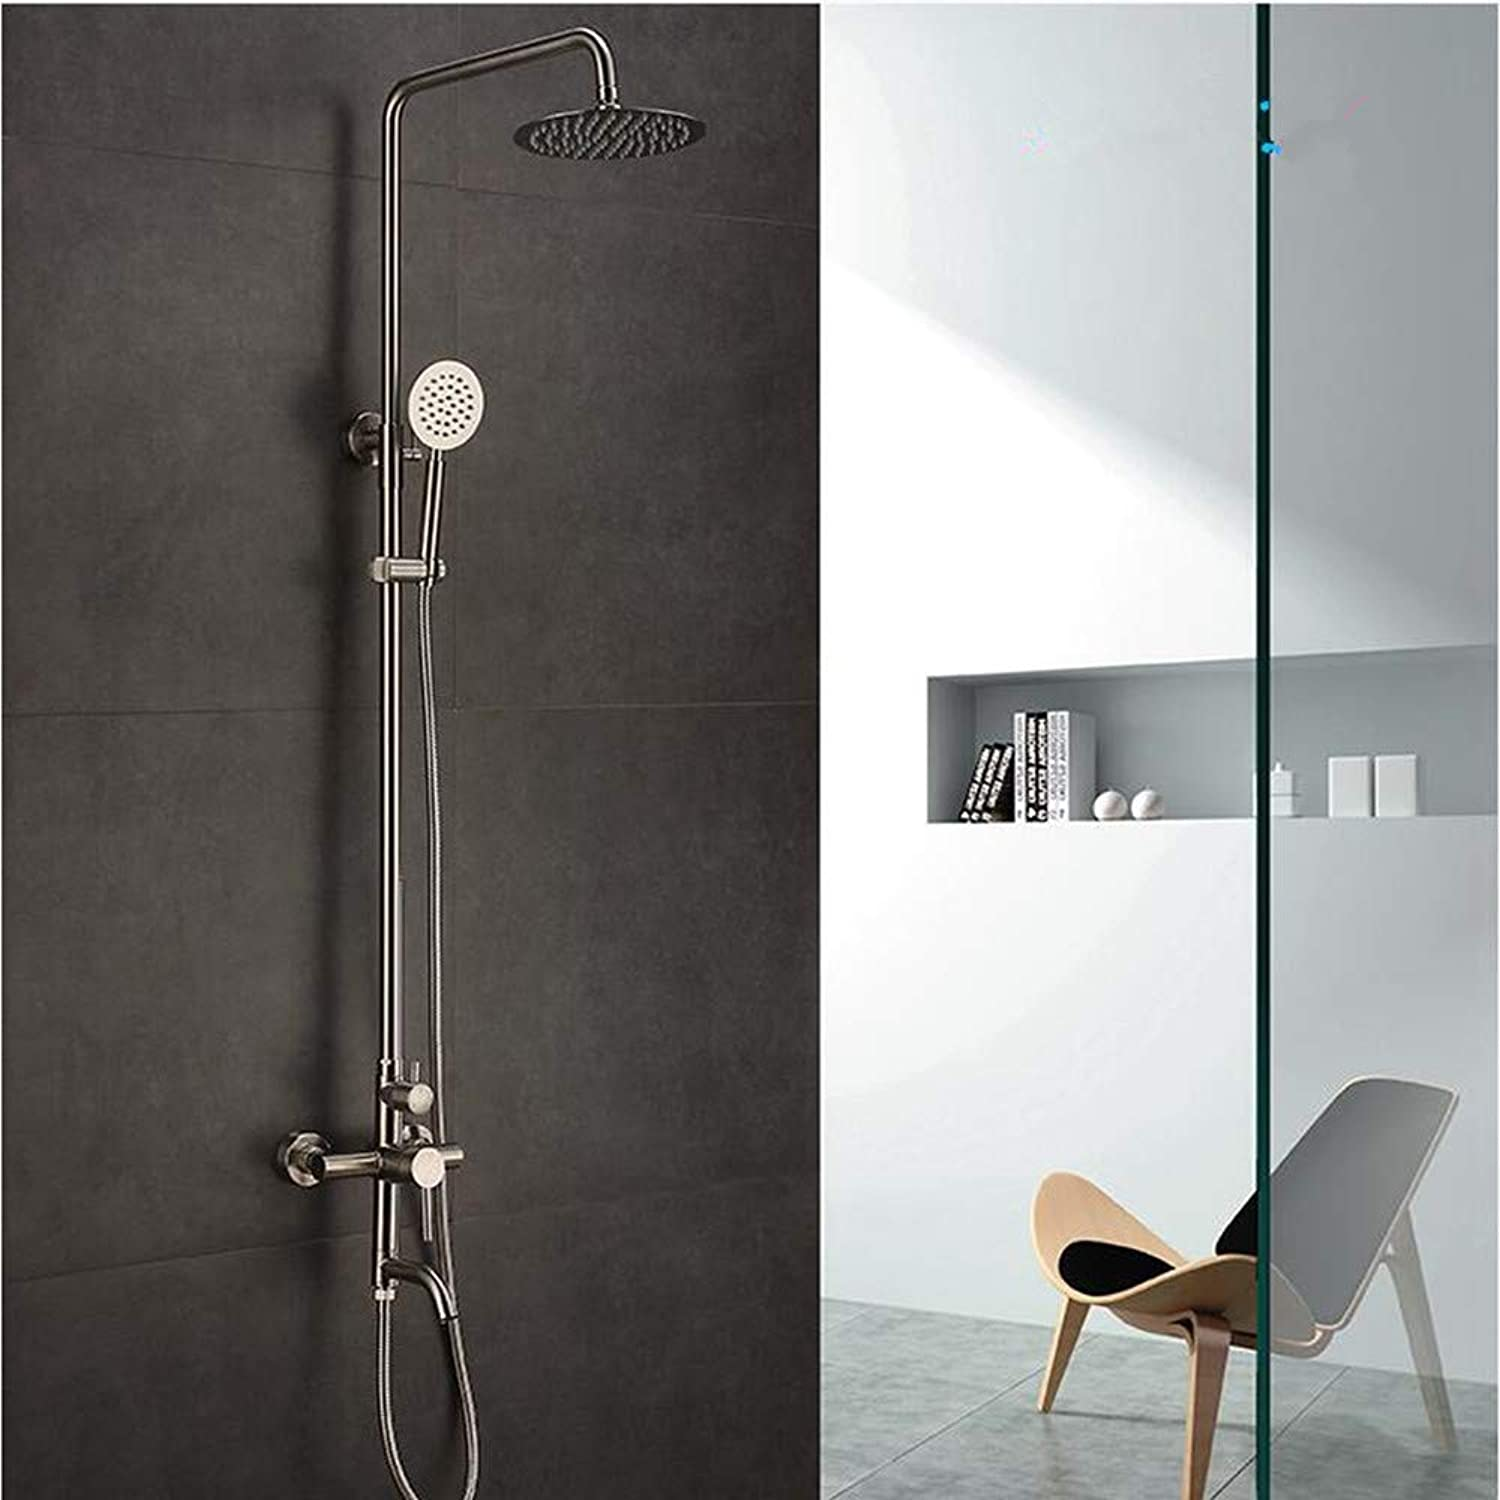 AGECC Best Choice Shower Bath Set Stainless Steel Large Shower Set Can Be redated With Lifting Shower Shower